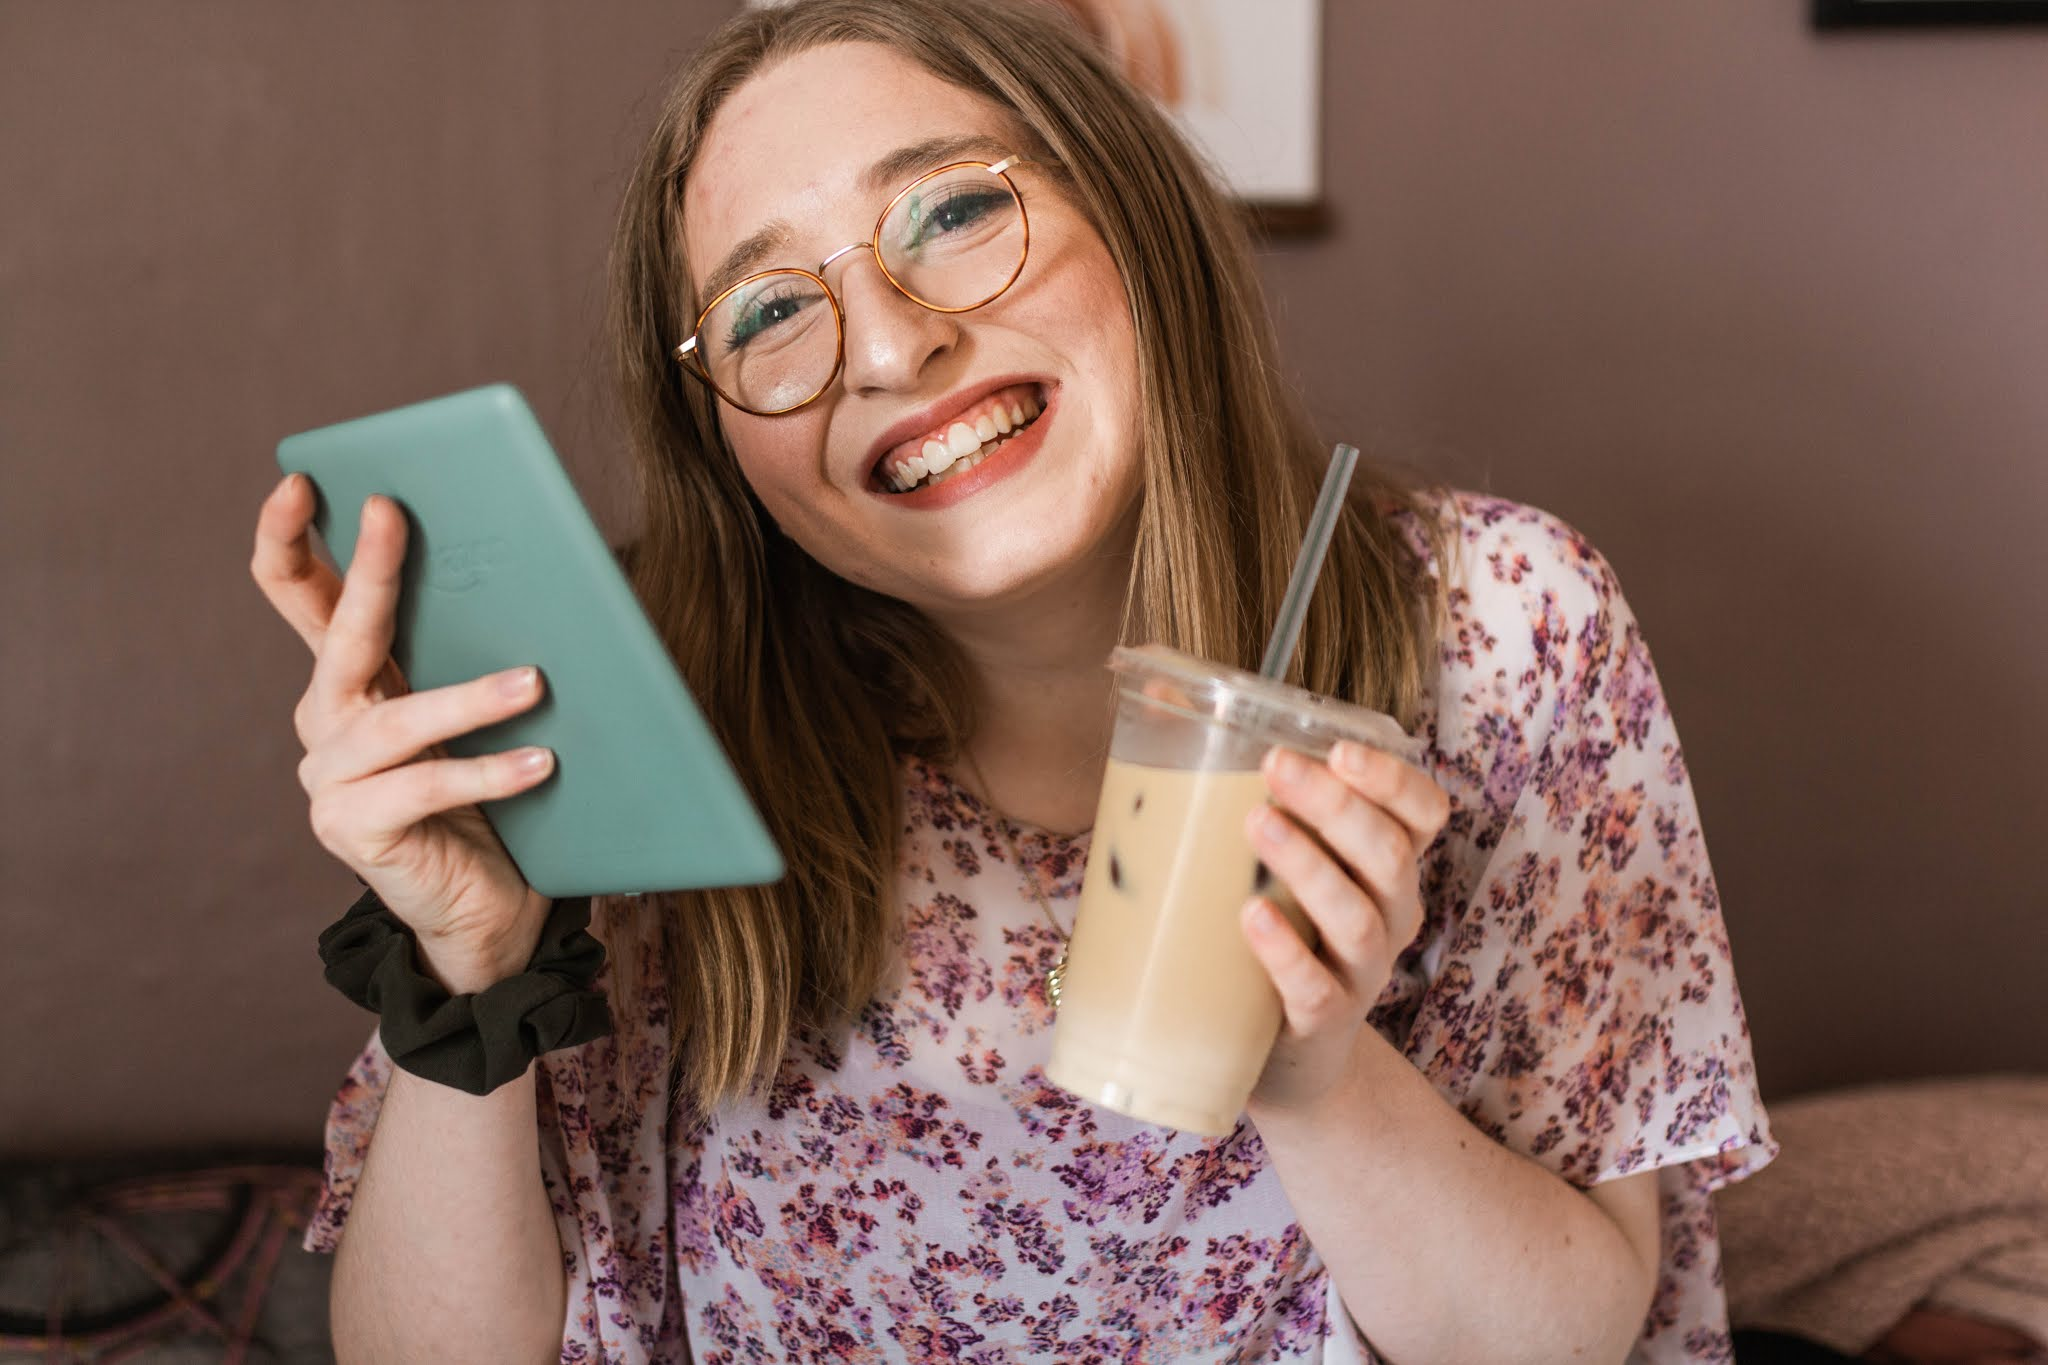 girl smiling while holding sage kindle paperwhite and iced coffee latte